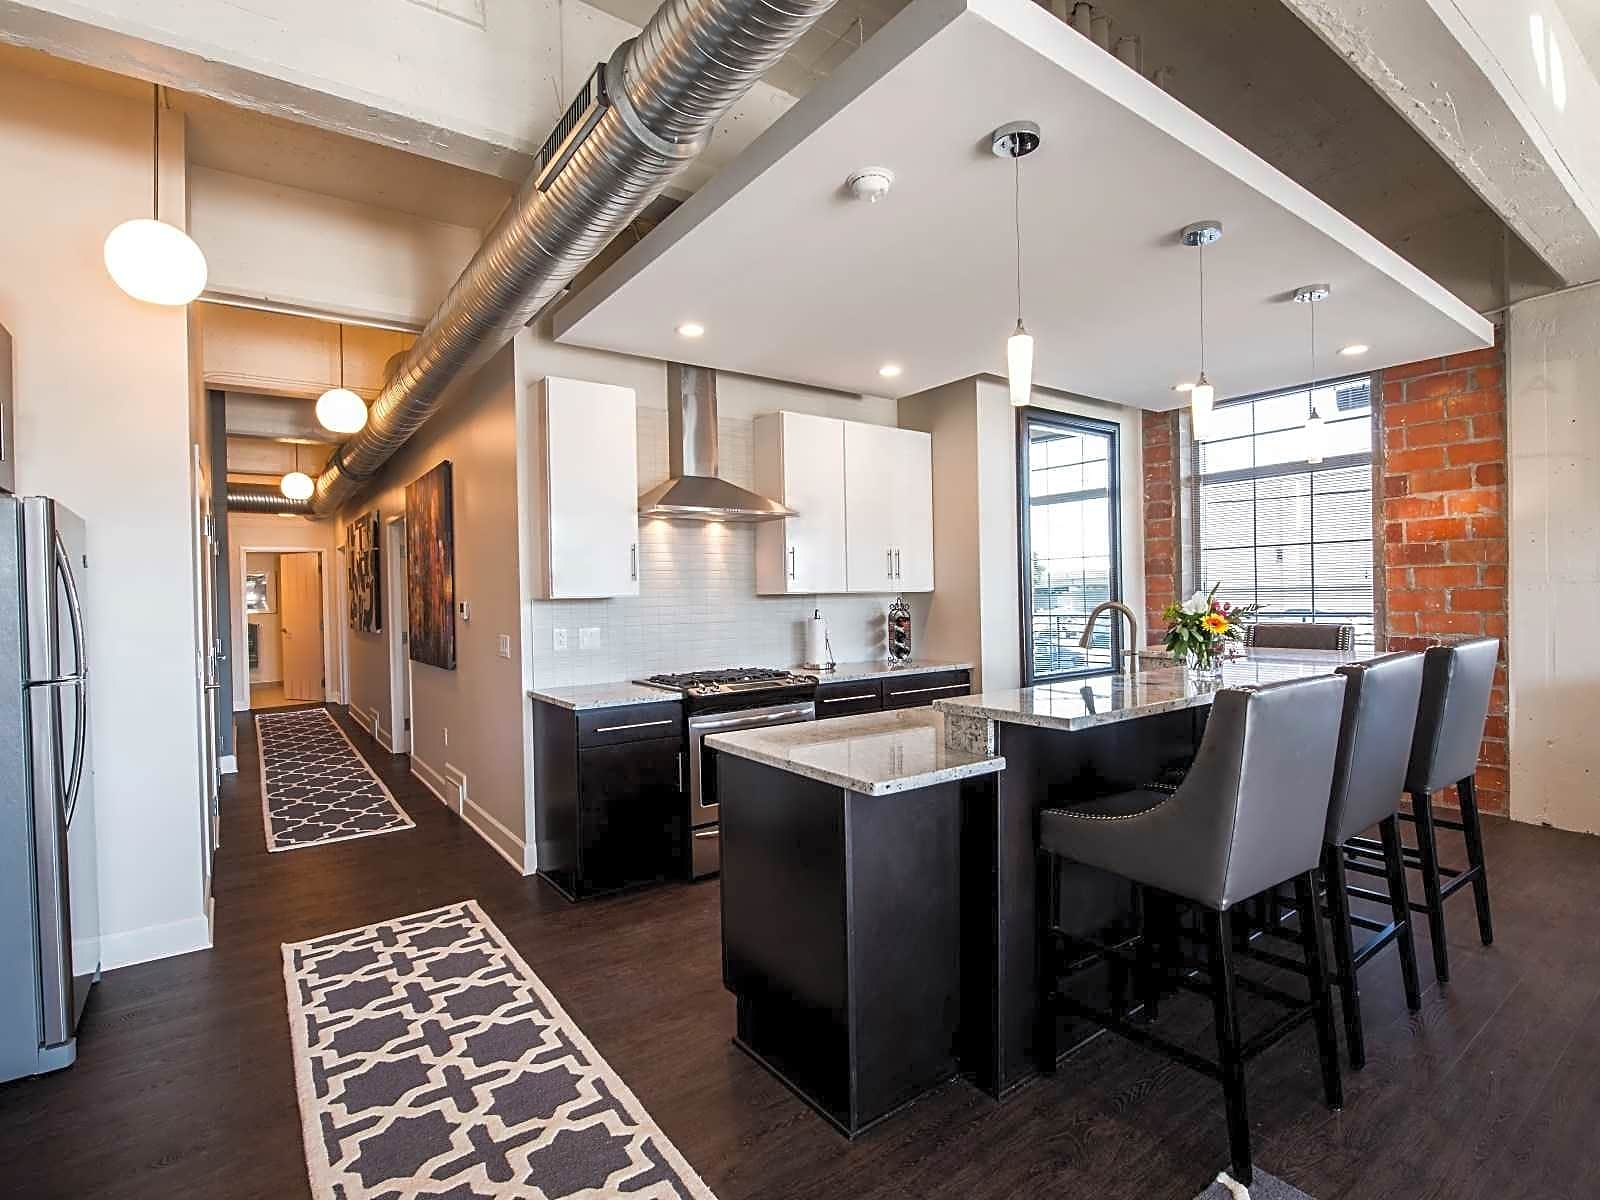 Apartments Near D'Youville Lofts At Elk Terminal for D'Youville College Students in Buffalo, NY